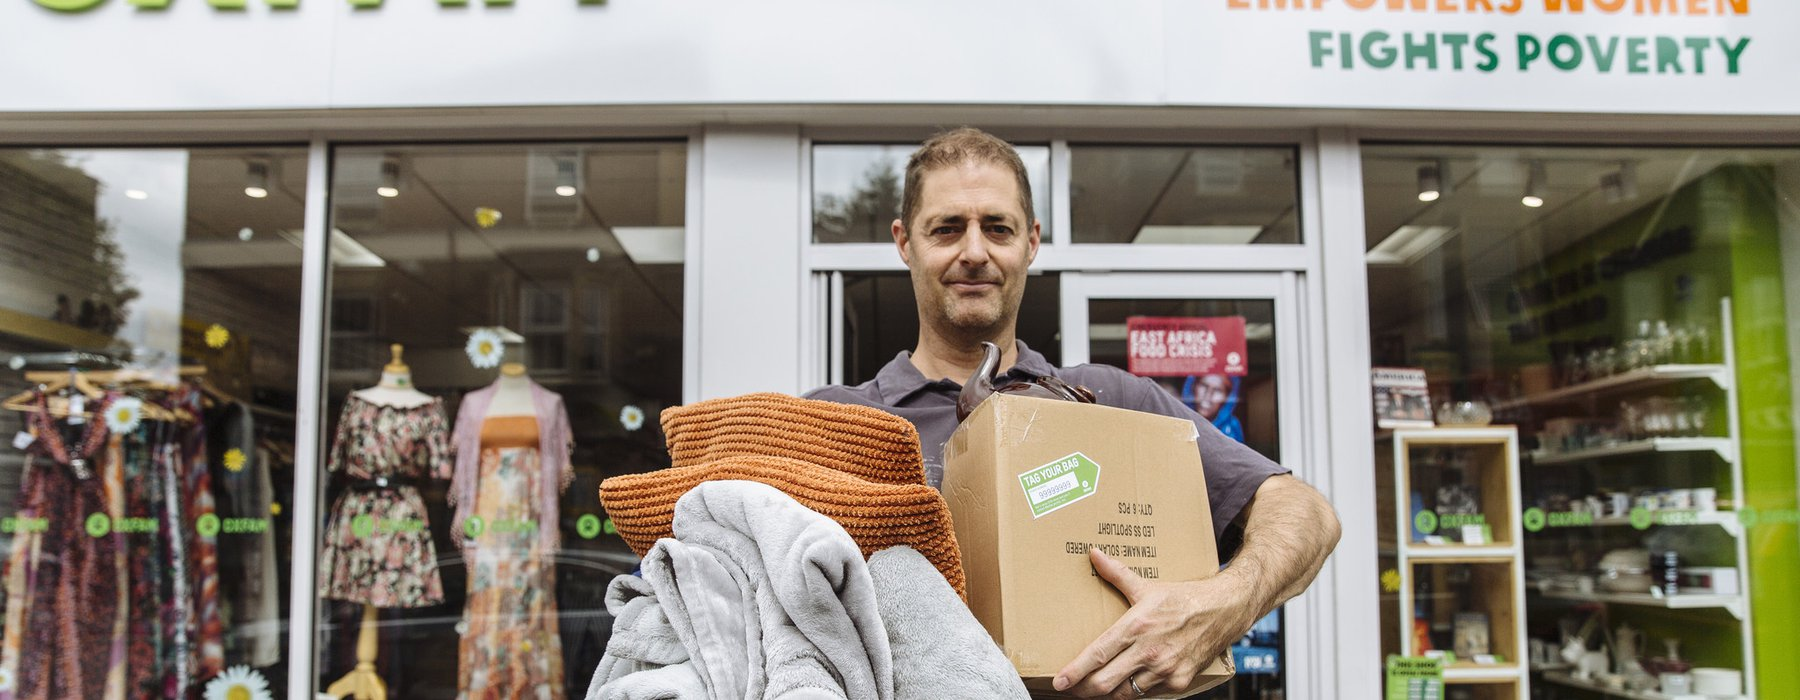 David Franklin poses with items to donate outside the Oxfam shop on Cowley Road, Oxford